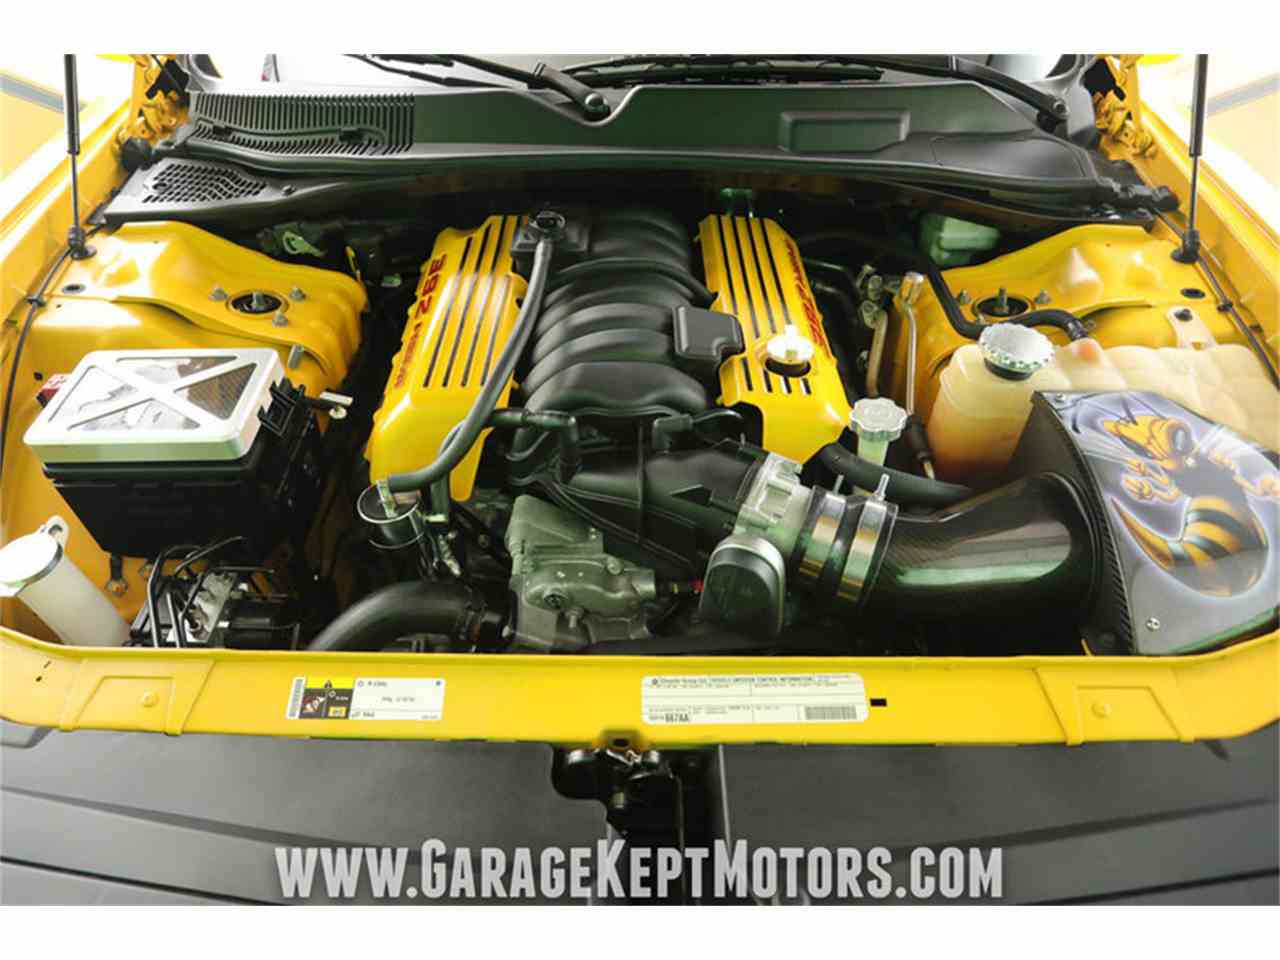 Large Picture of '12 Dodge Challenger SRT8 392 Yellow Jacket located in Michigan - $36,500.00 - MAXR